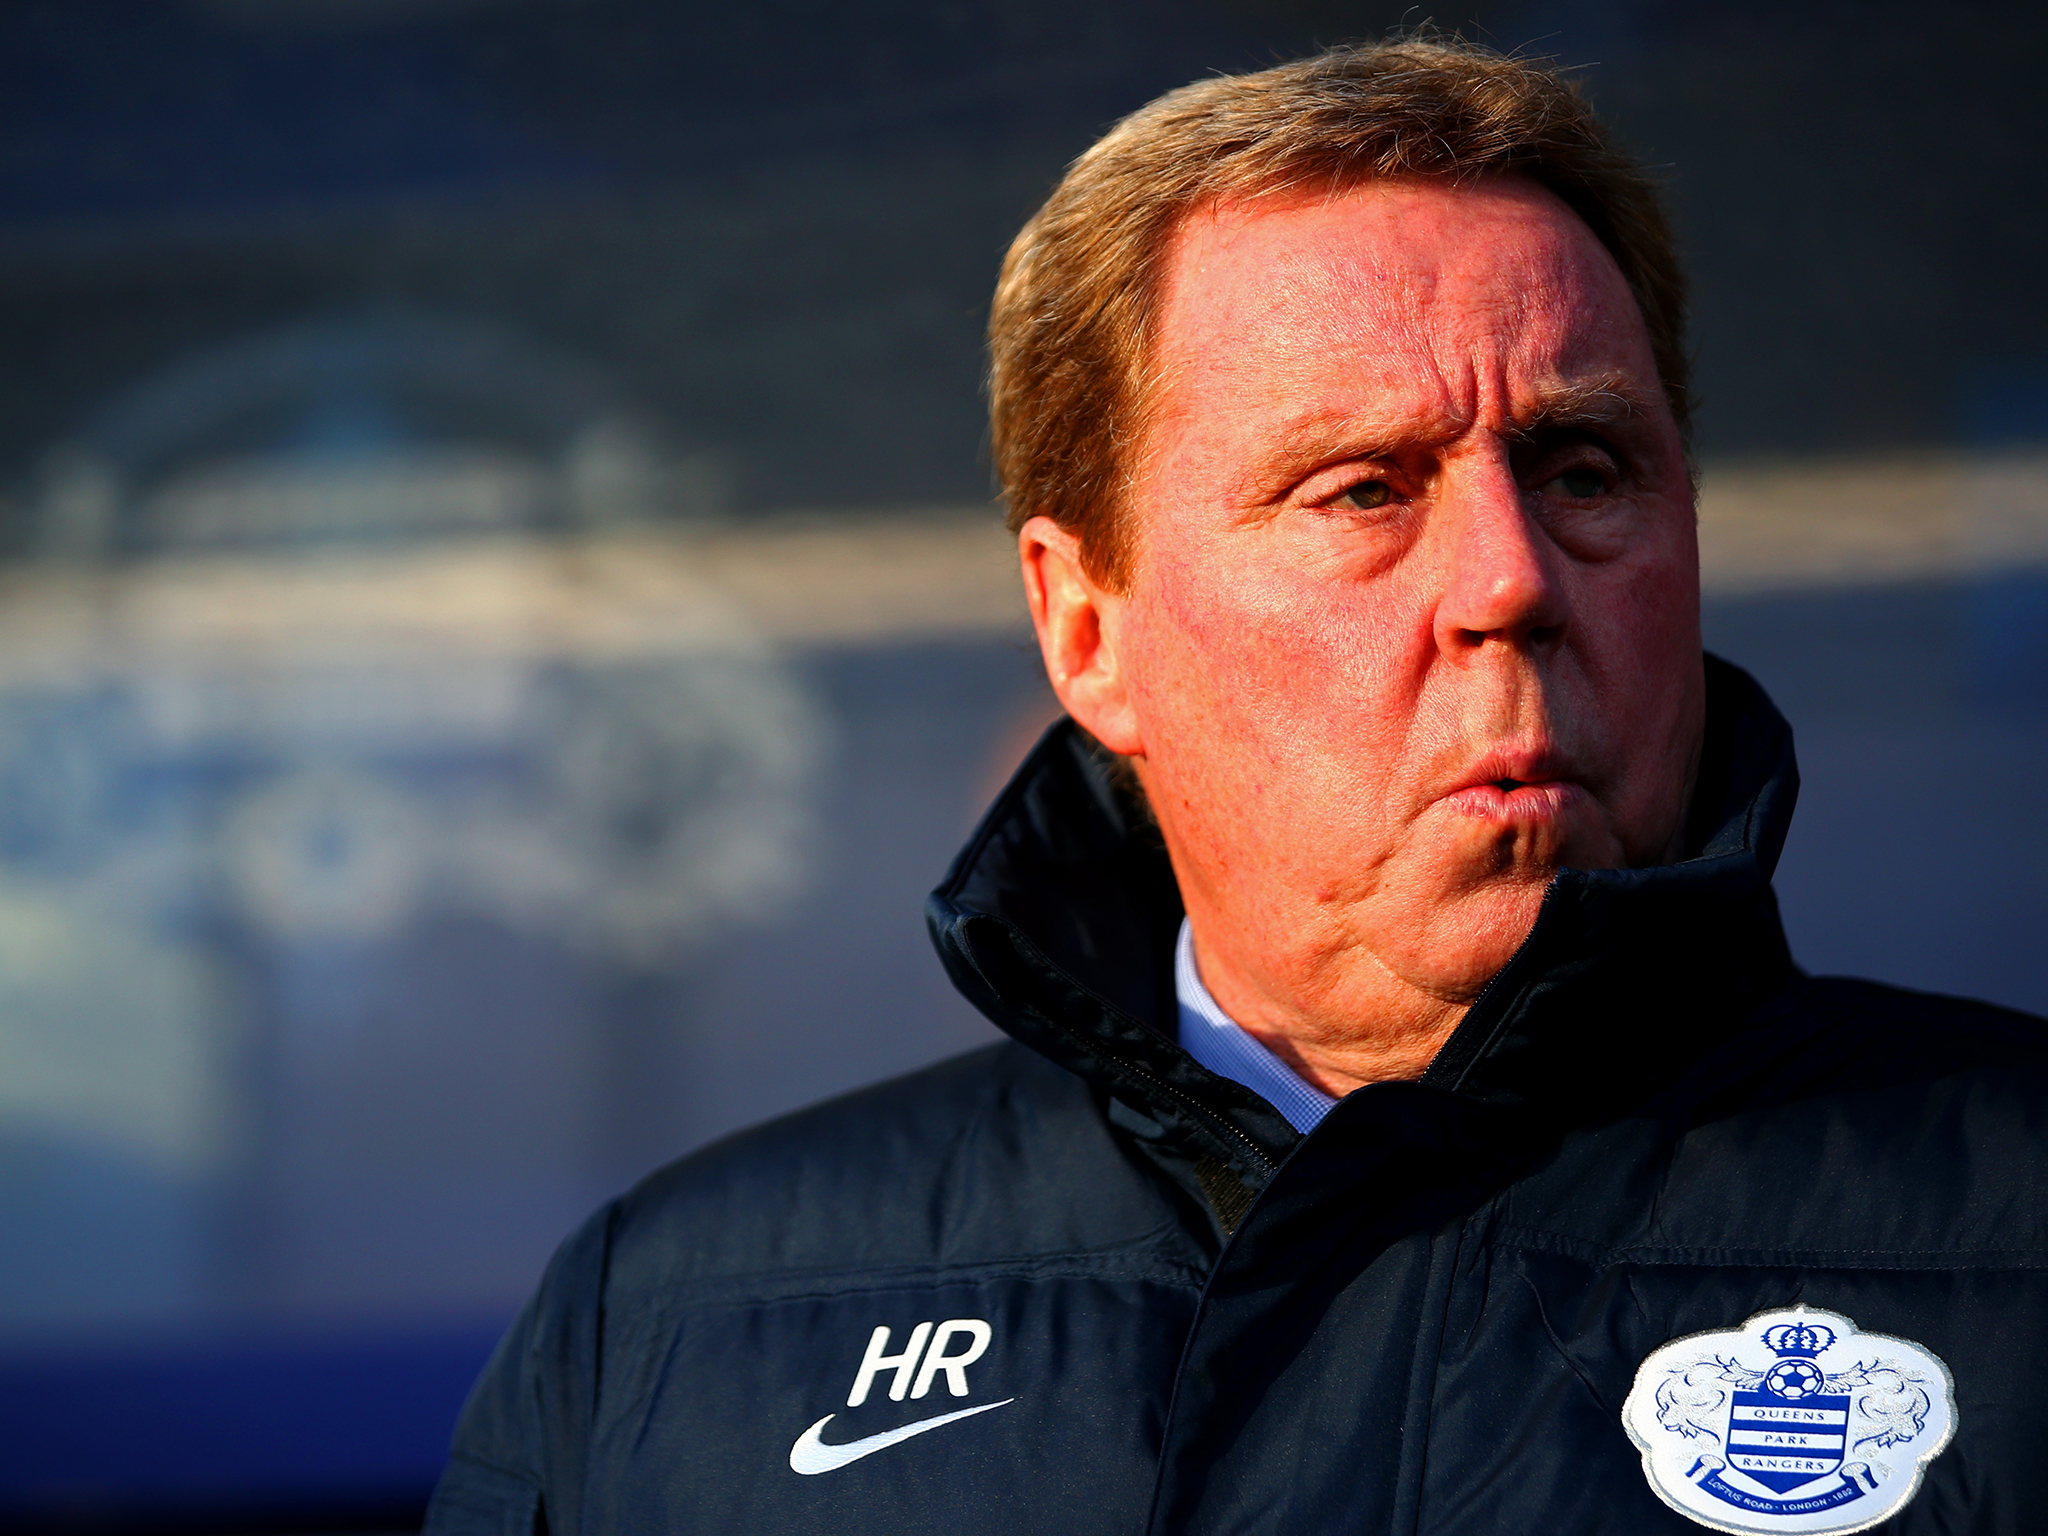 Harry Redknapp is the Birmingham City boss